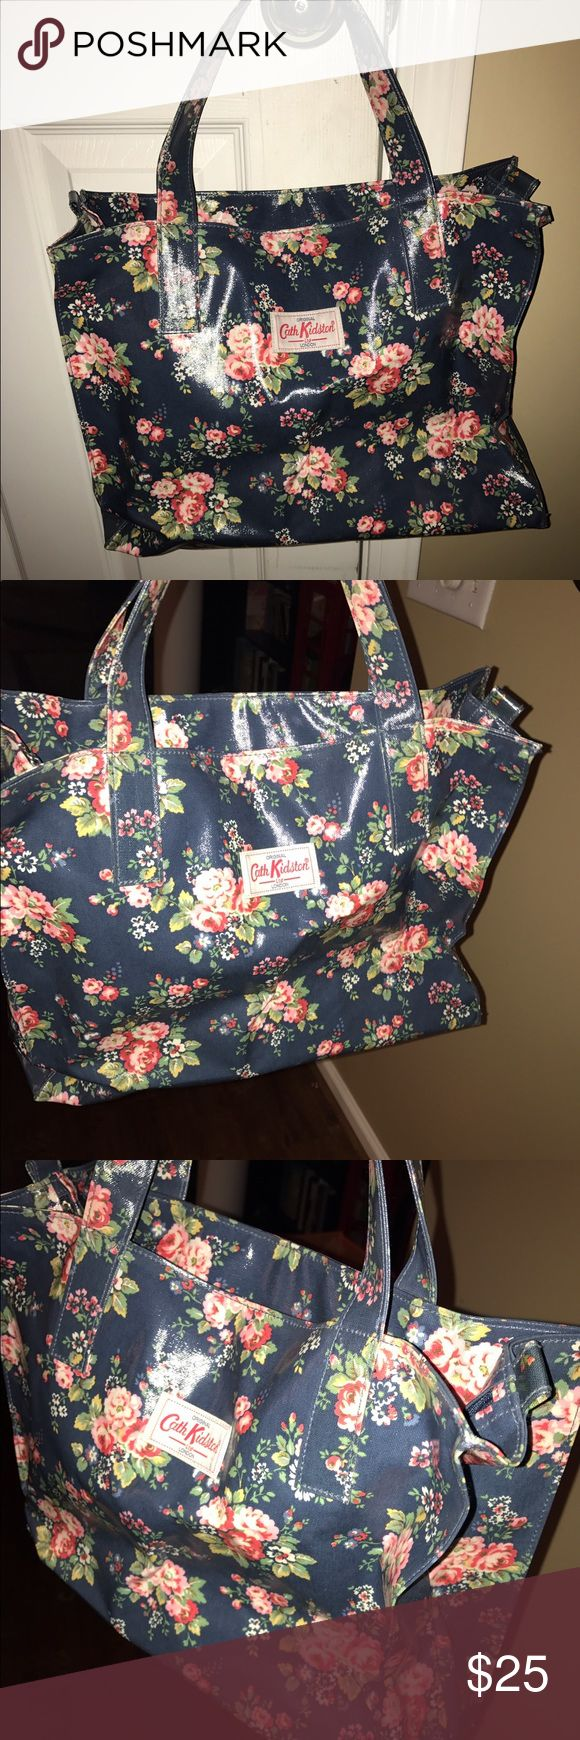 Floral Cath Kidston tote Excellent condition handbag or tote Cath Kidston Bags Totes